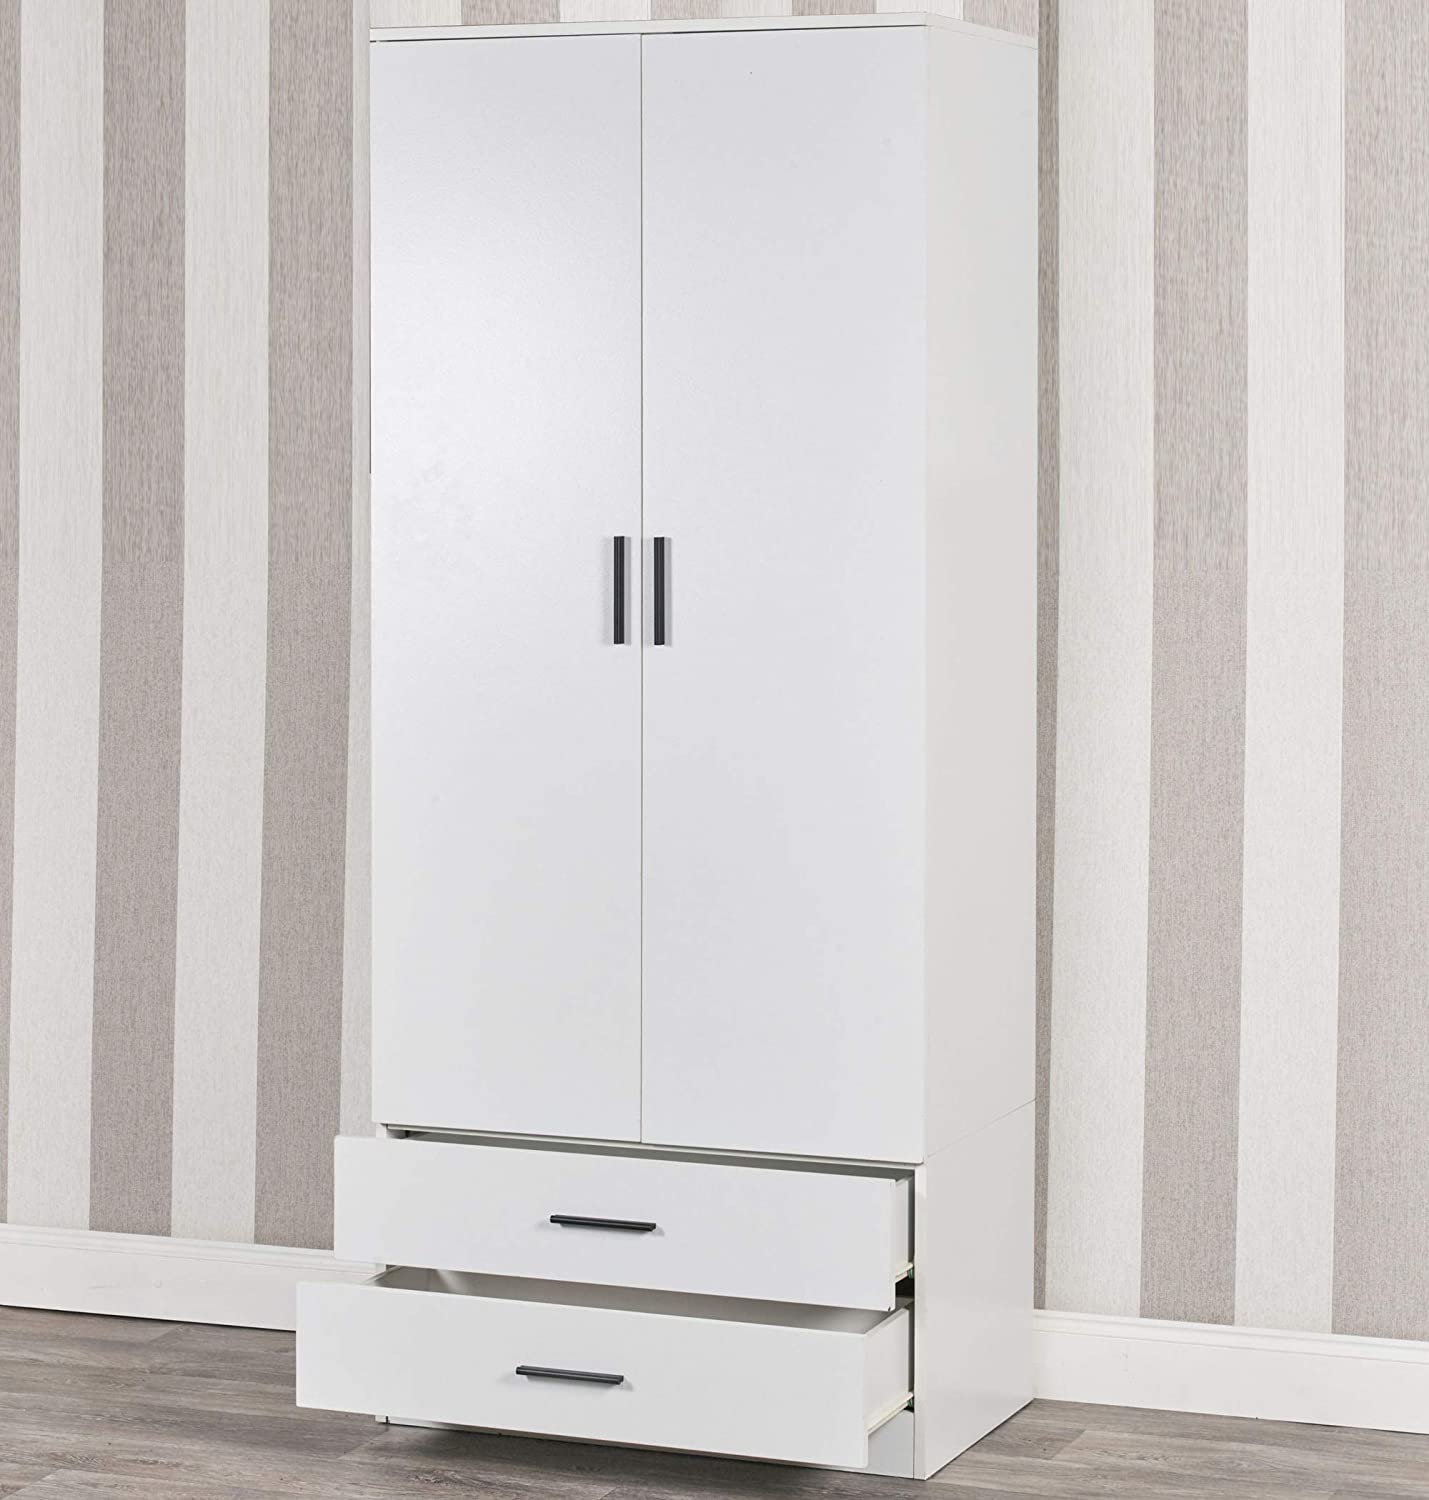 Tall Wooden White 2 Door Wardrobe With 2 Drawers Bedroom Storage Hanging Bar Clothes White Carcass + Black Drawers